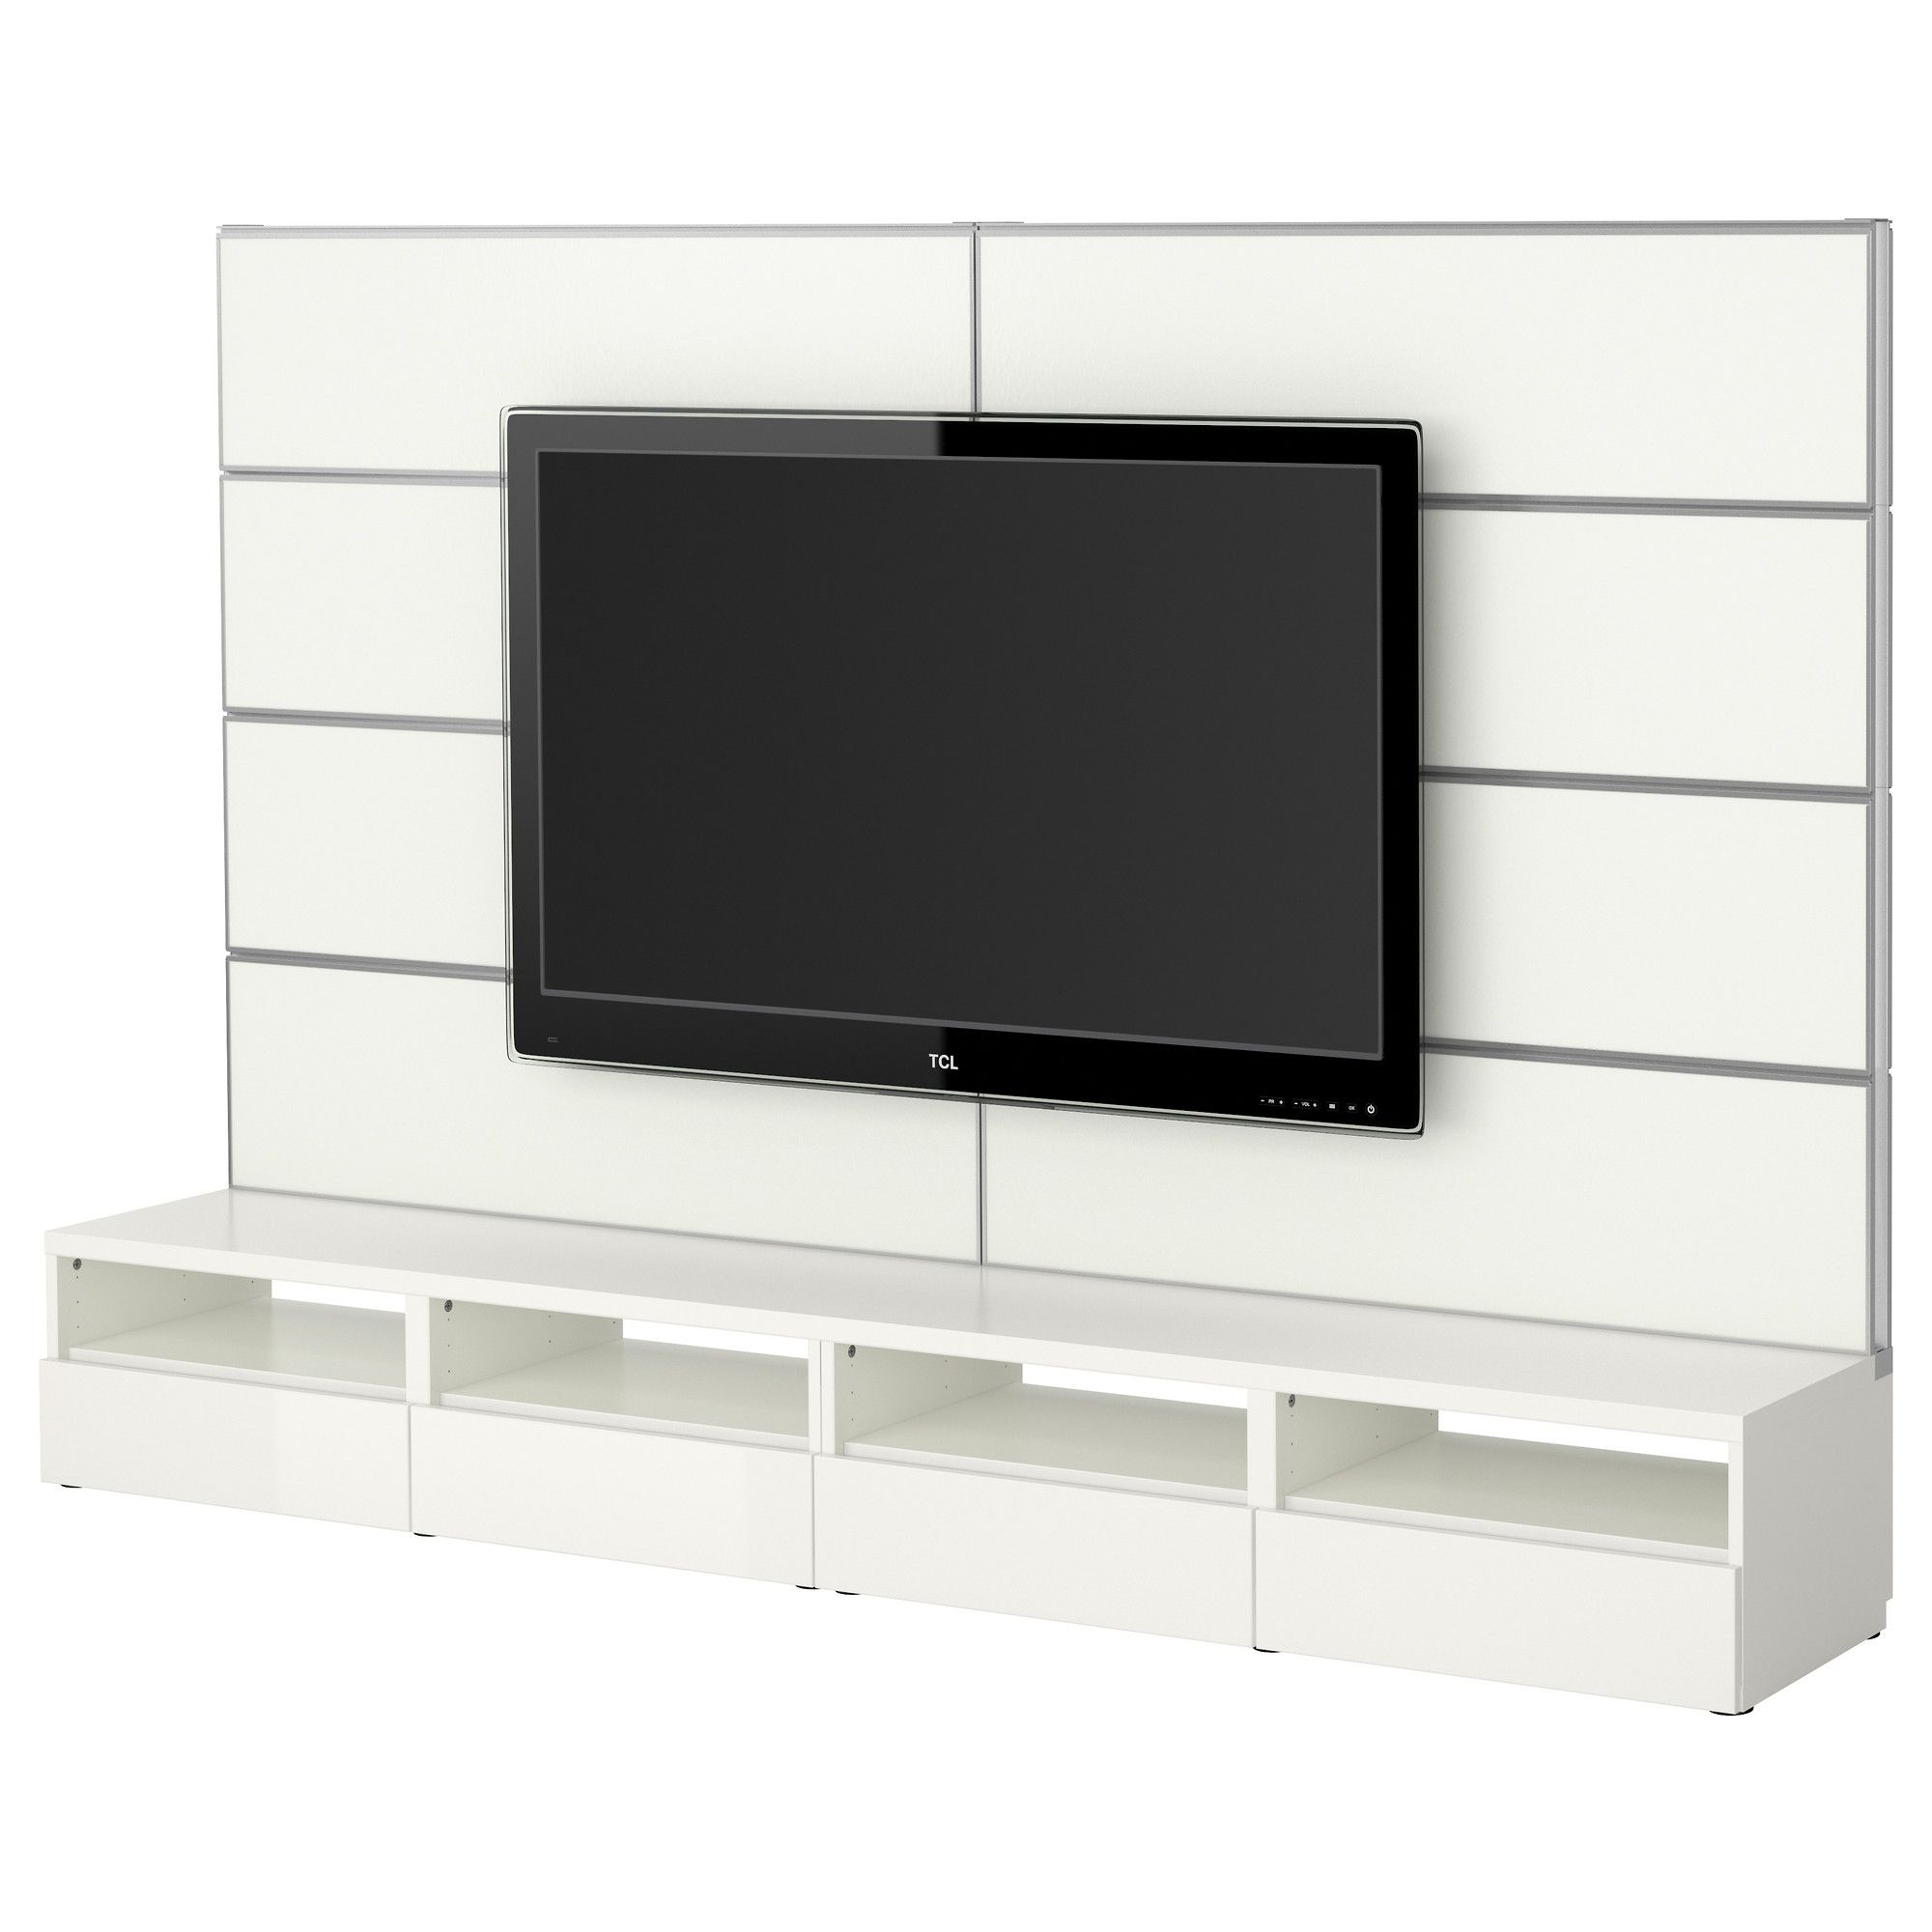 BESTÅFRAMSTÅ TV storage combination  white  IKEA  Apt  Pinterest  Tv st -> Meuble Tv Mural Suspendu Ikea